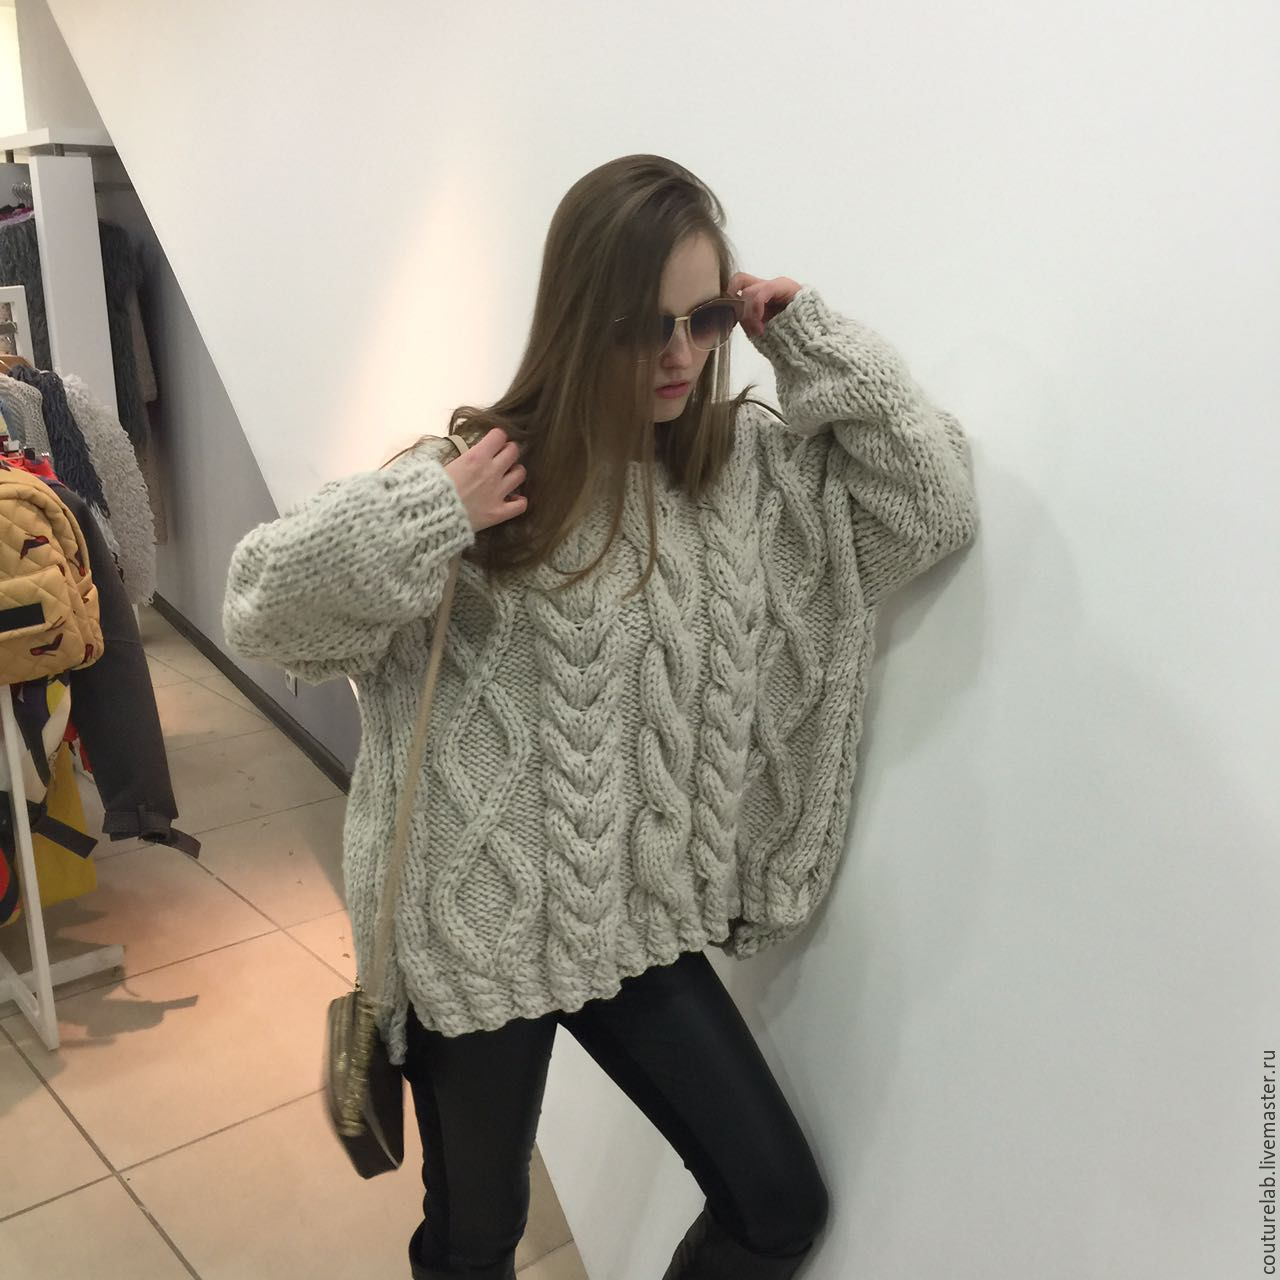 In pictures oversized sweater with braids from ShaparBrand.